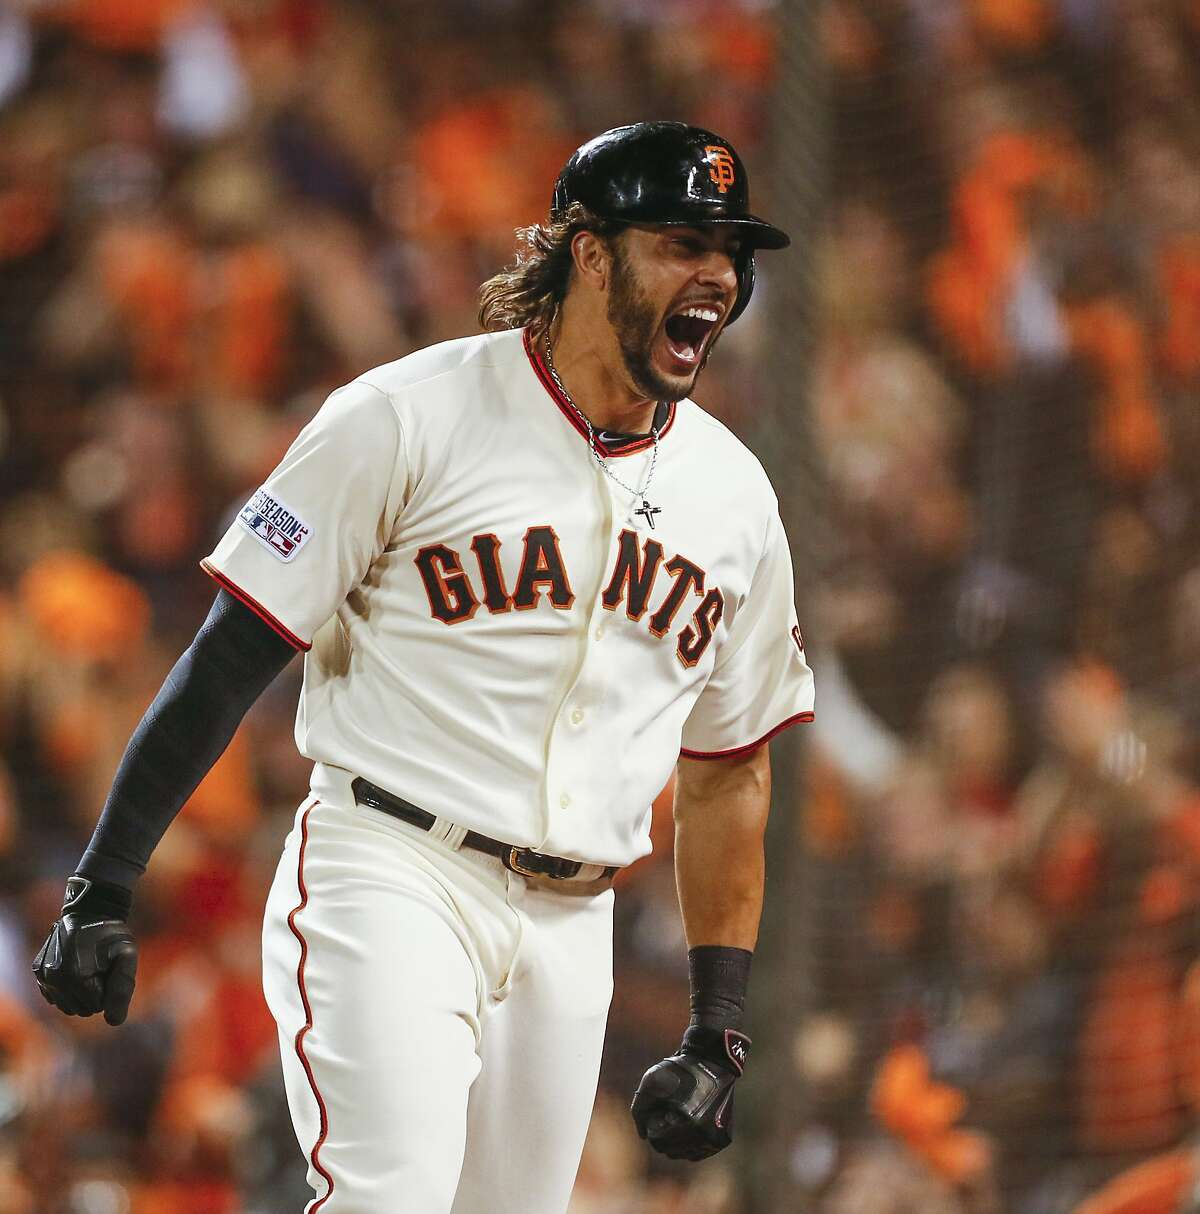 Giants Michael Morse celebrates a solo homer in the eighth inning during Game 5 of the NLCS at AT&T Park on Thursday, Oct. 16, 2014 in San Francisco, Calif.